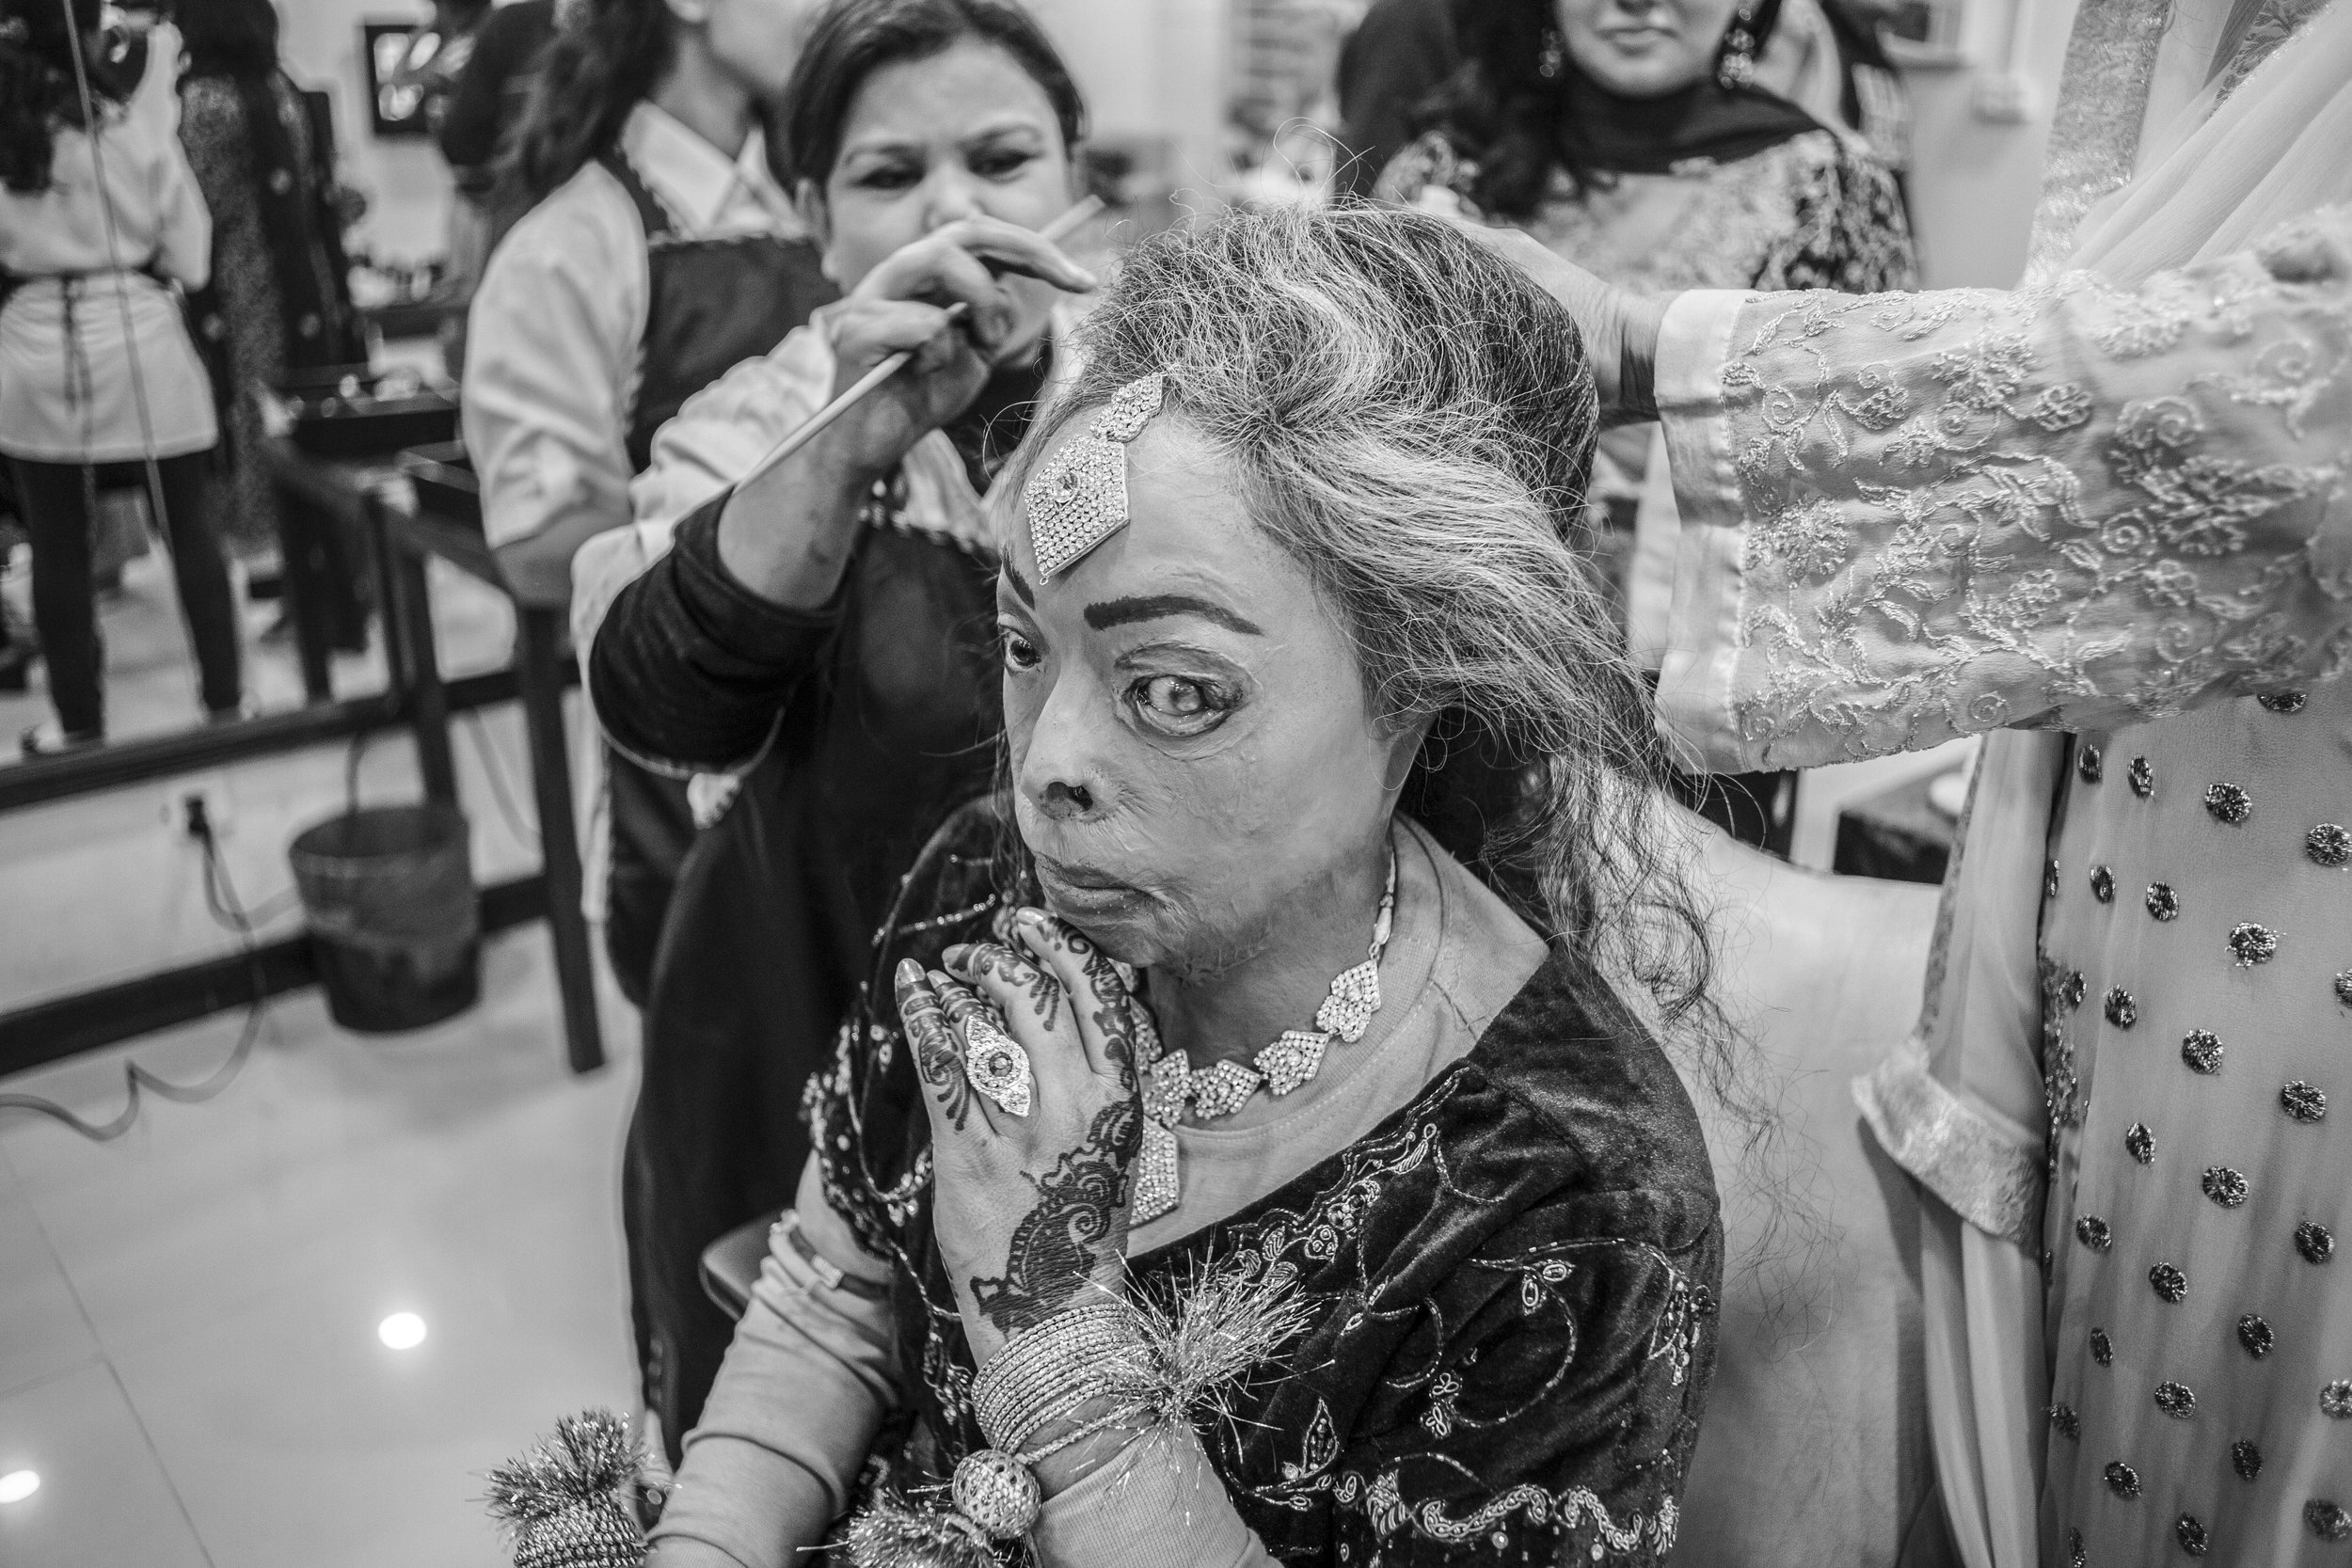 Sarwari Bibi, an acid attack survivor, gets dressed for her wedding ceremony at Depilex Salon, on Jan. 7, 2016 in Lahore, Pakistan.